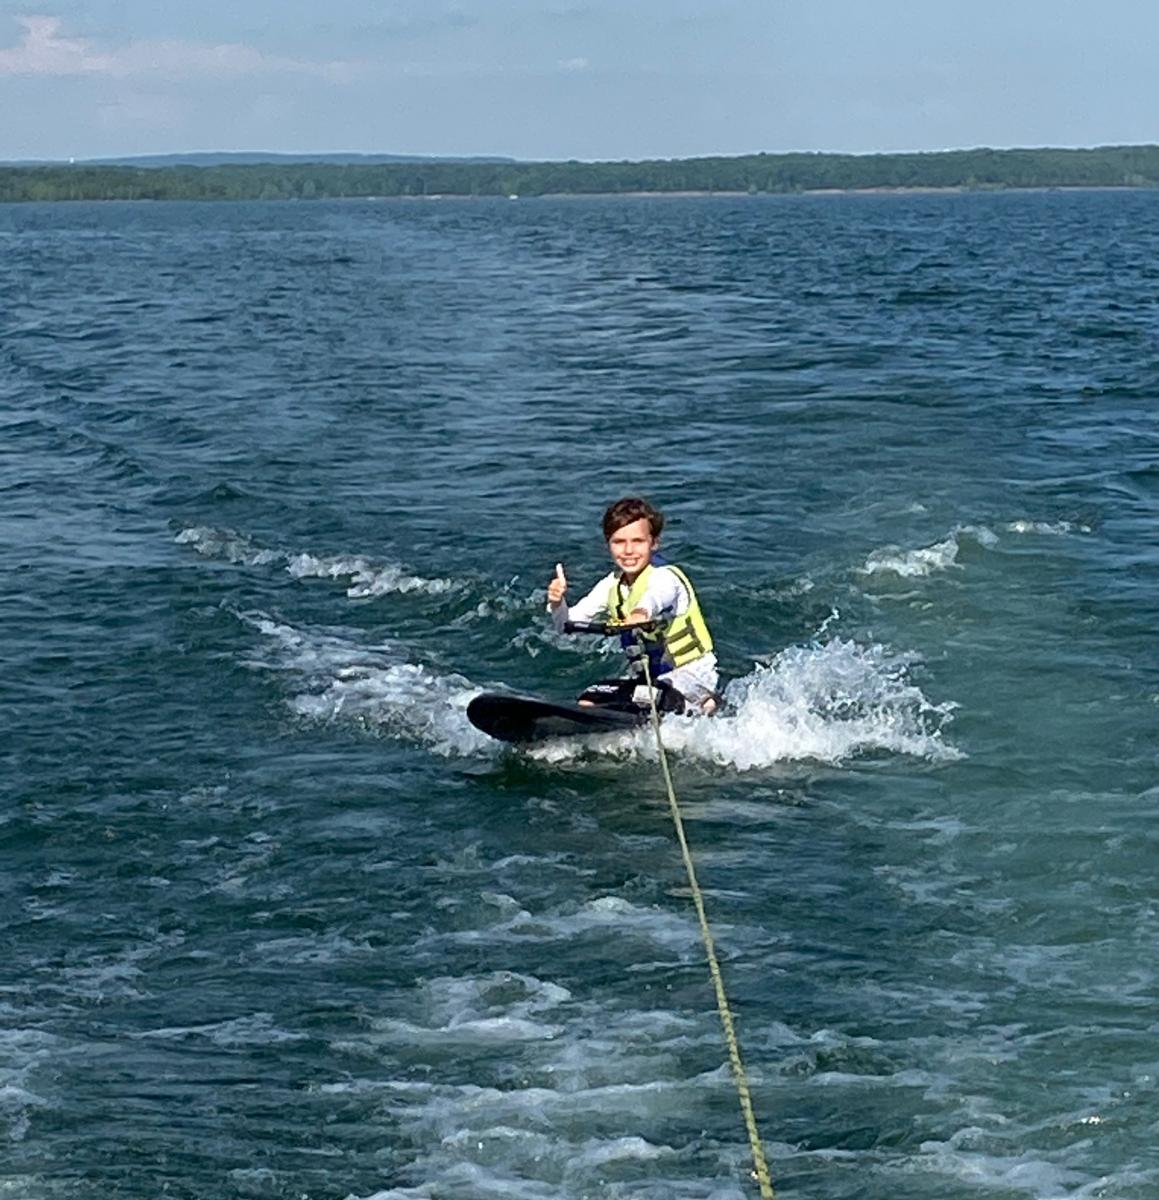 Child knee boarding on the lake